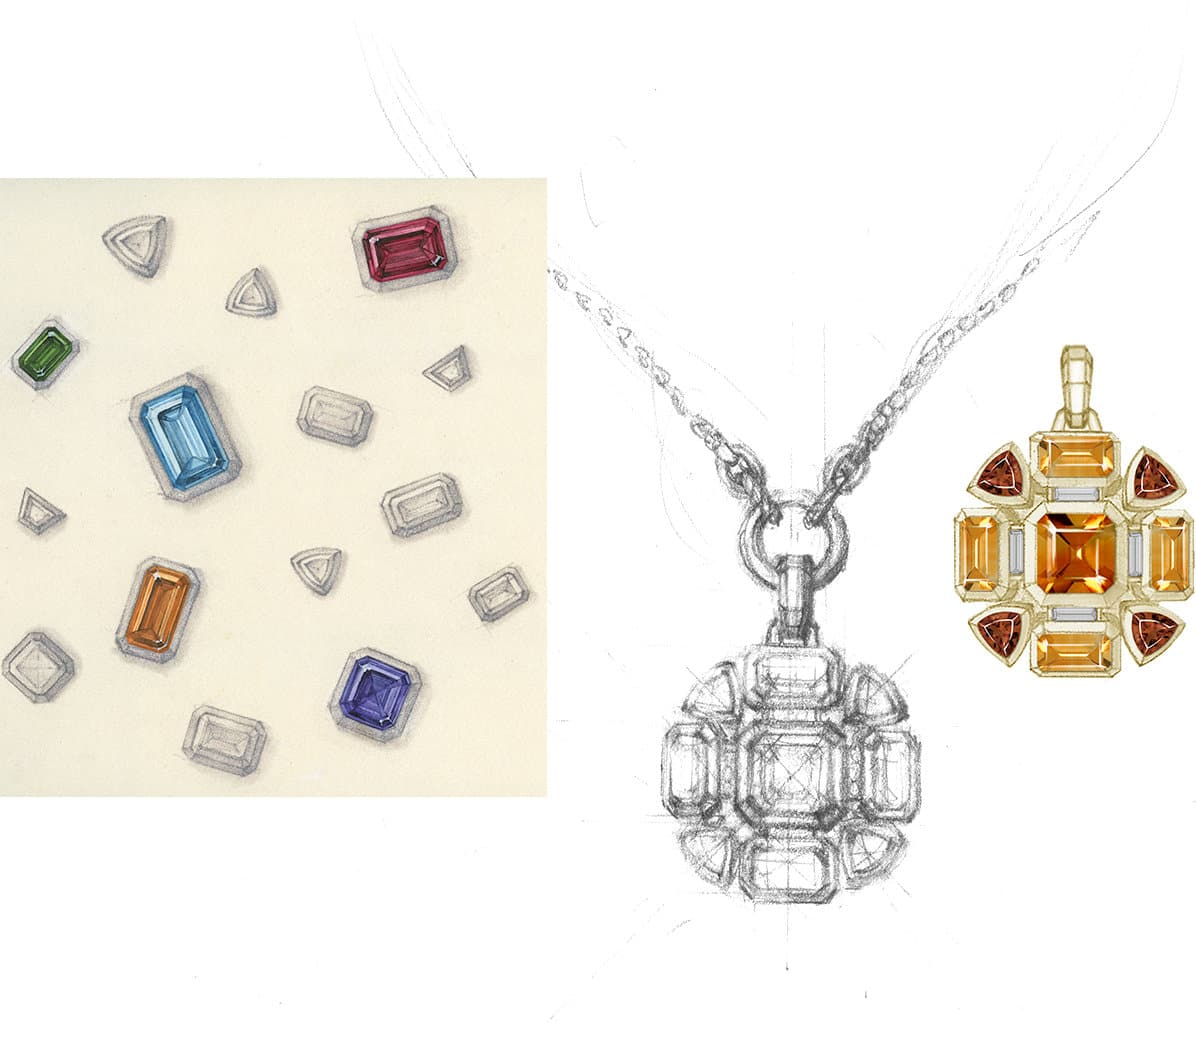 A pencil sketch of scattered emerald, trillion and baguette gemstones with five gemstones colored in next to drawings of two Novella pendants with citrines and pink tourmalines set in 18K yellow gold.